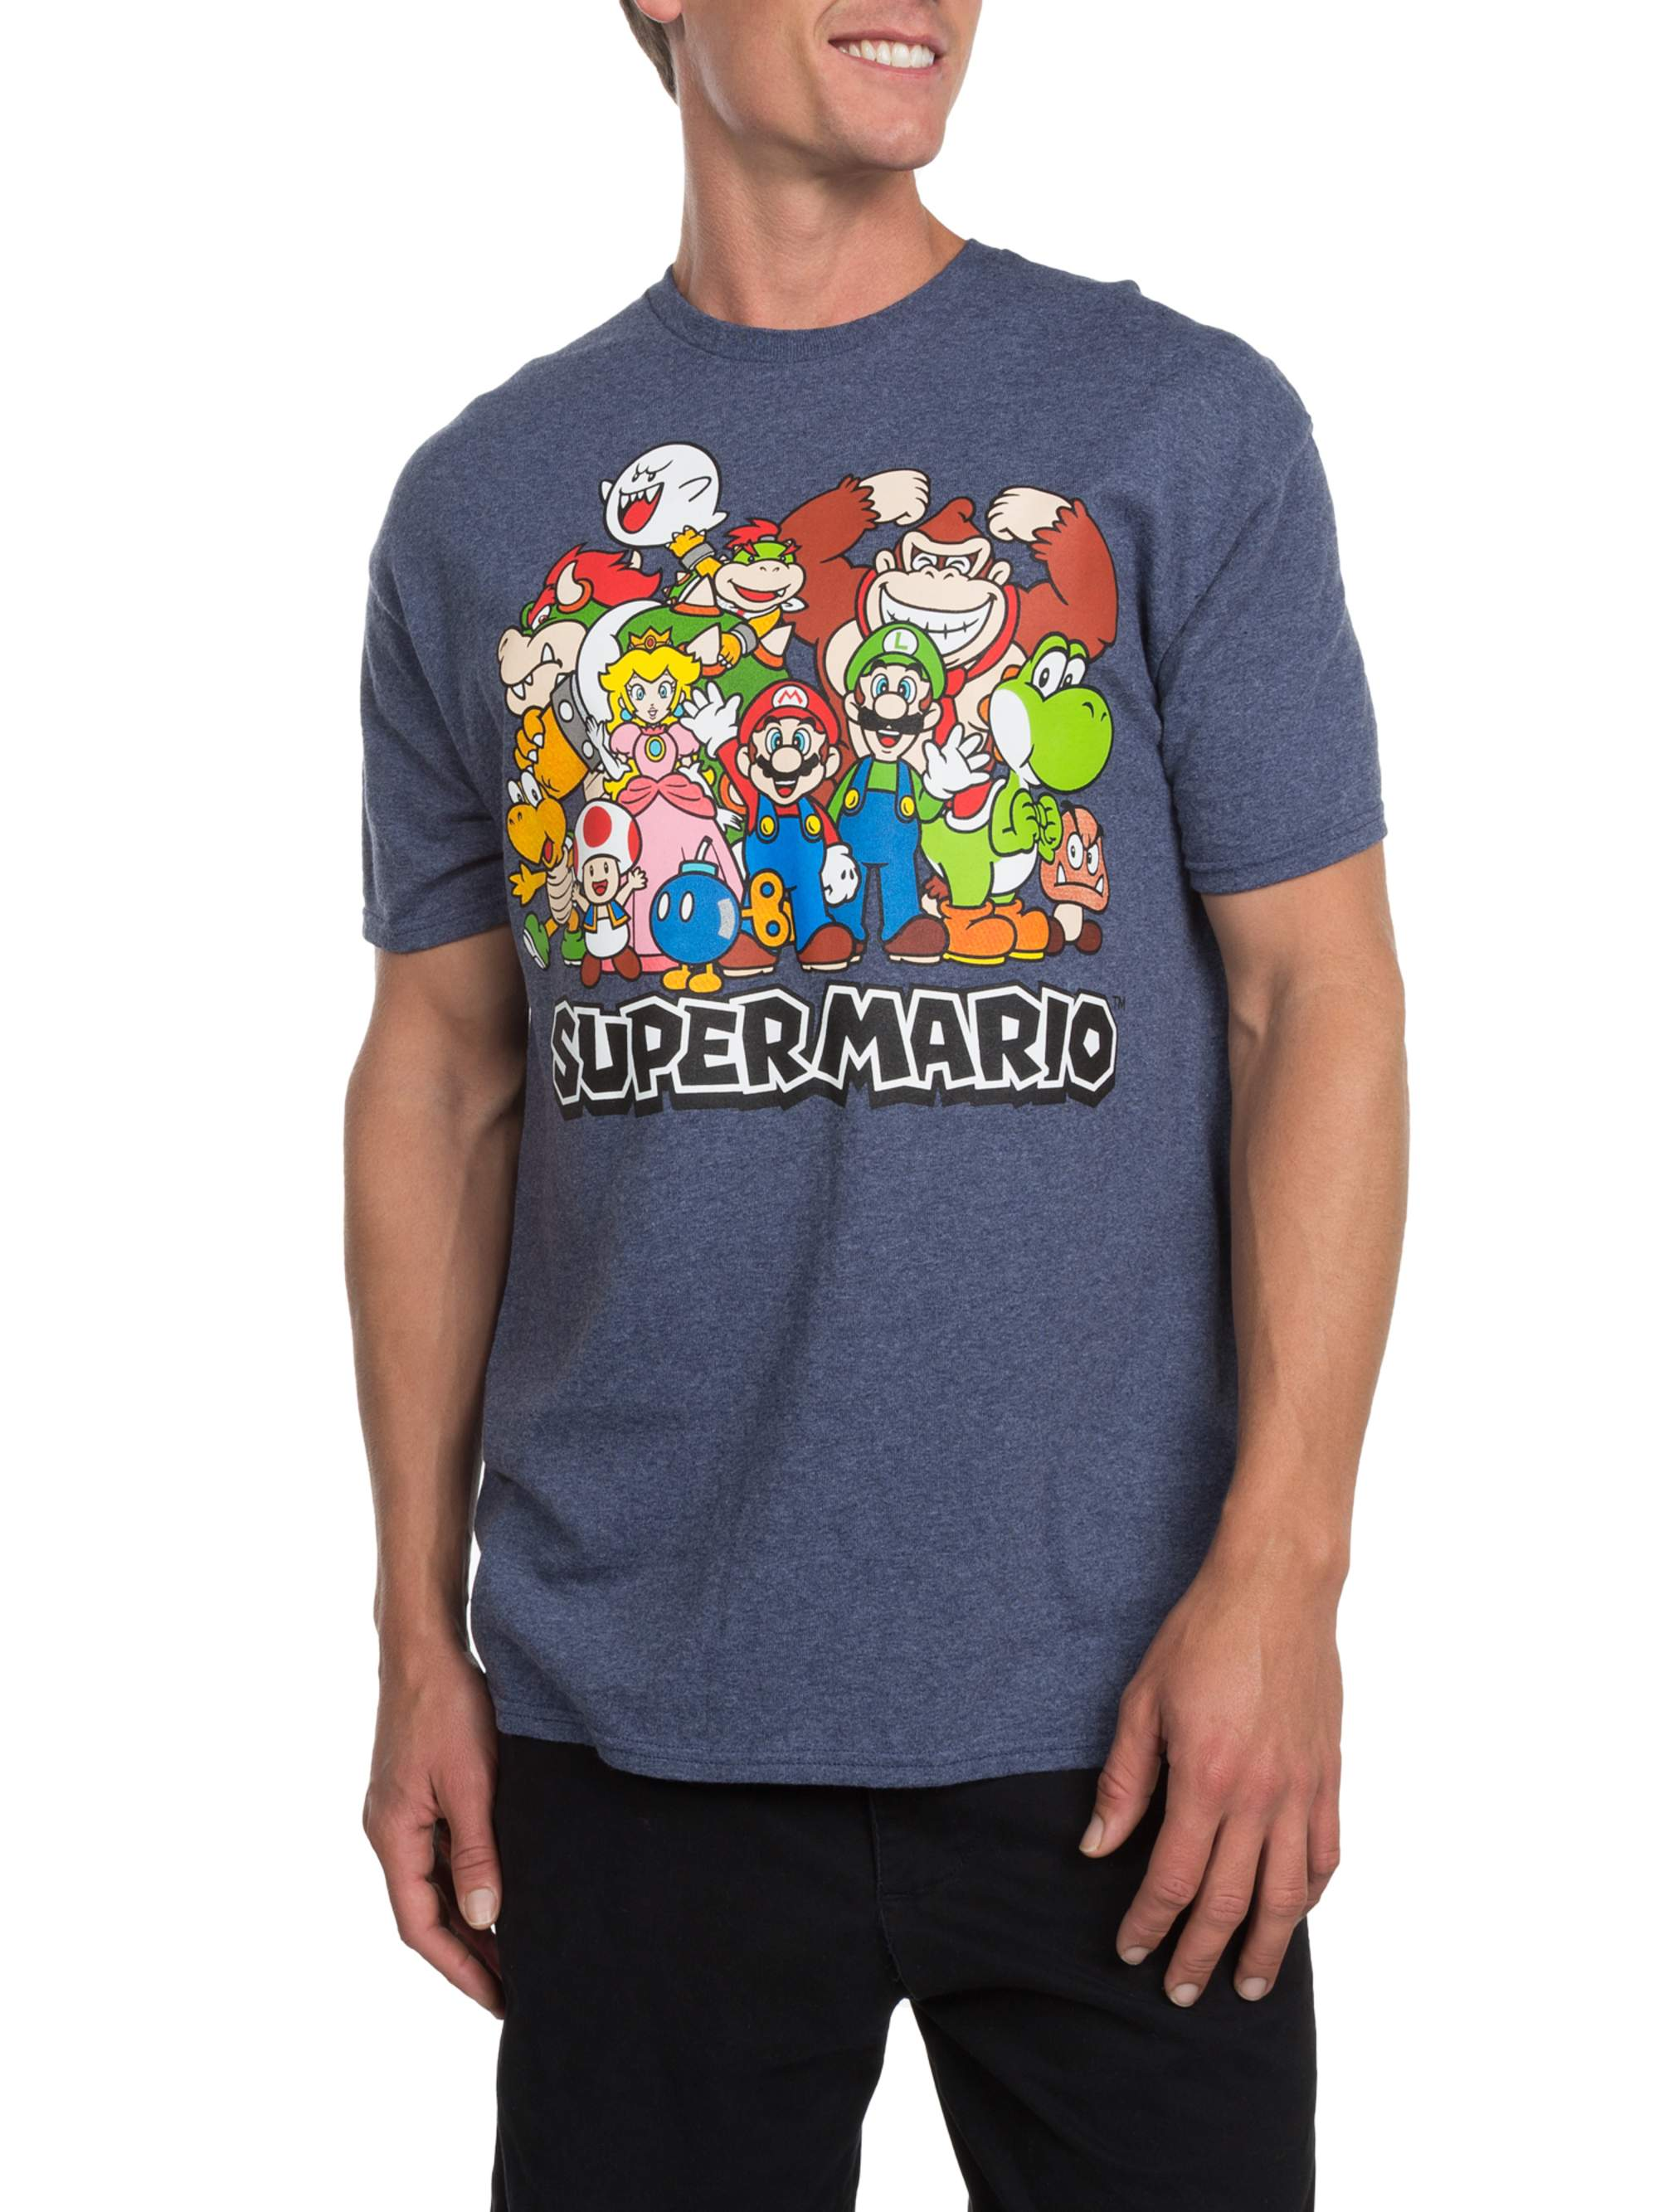 Super Nintendo Squad Men's Short Sleeve Graphic T-shirt, up to Size 3XL